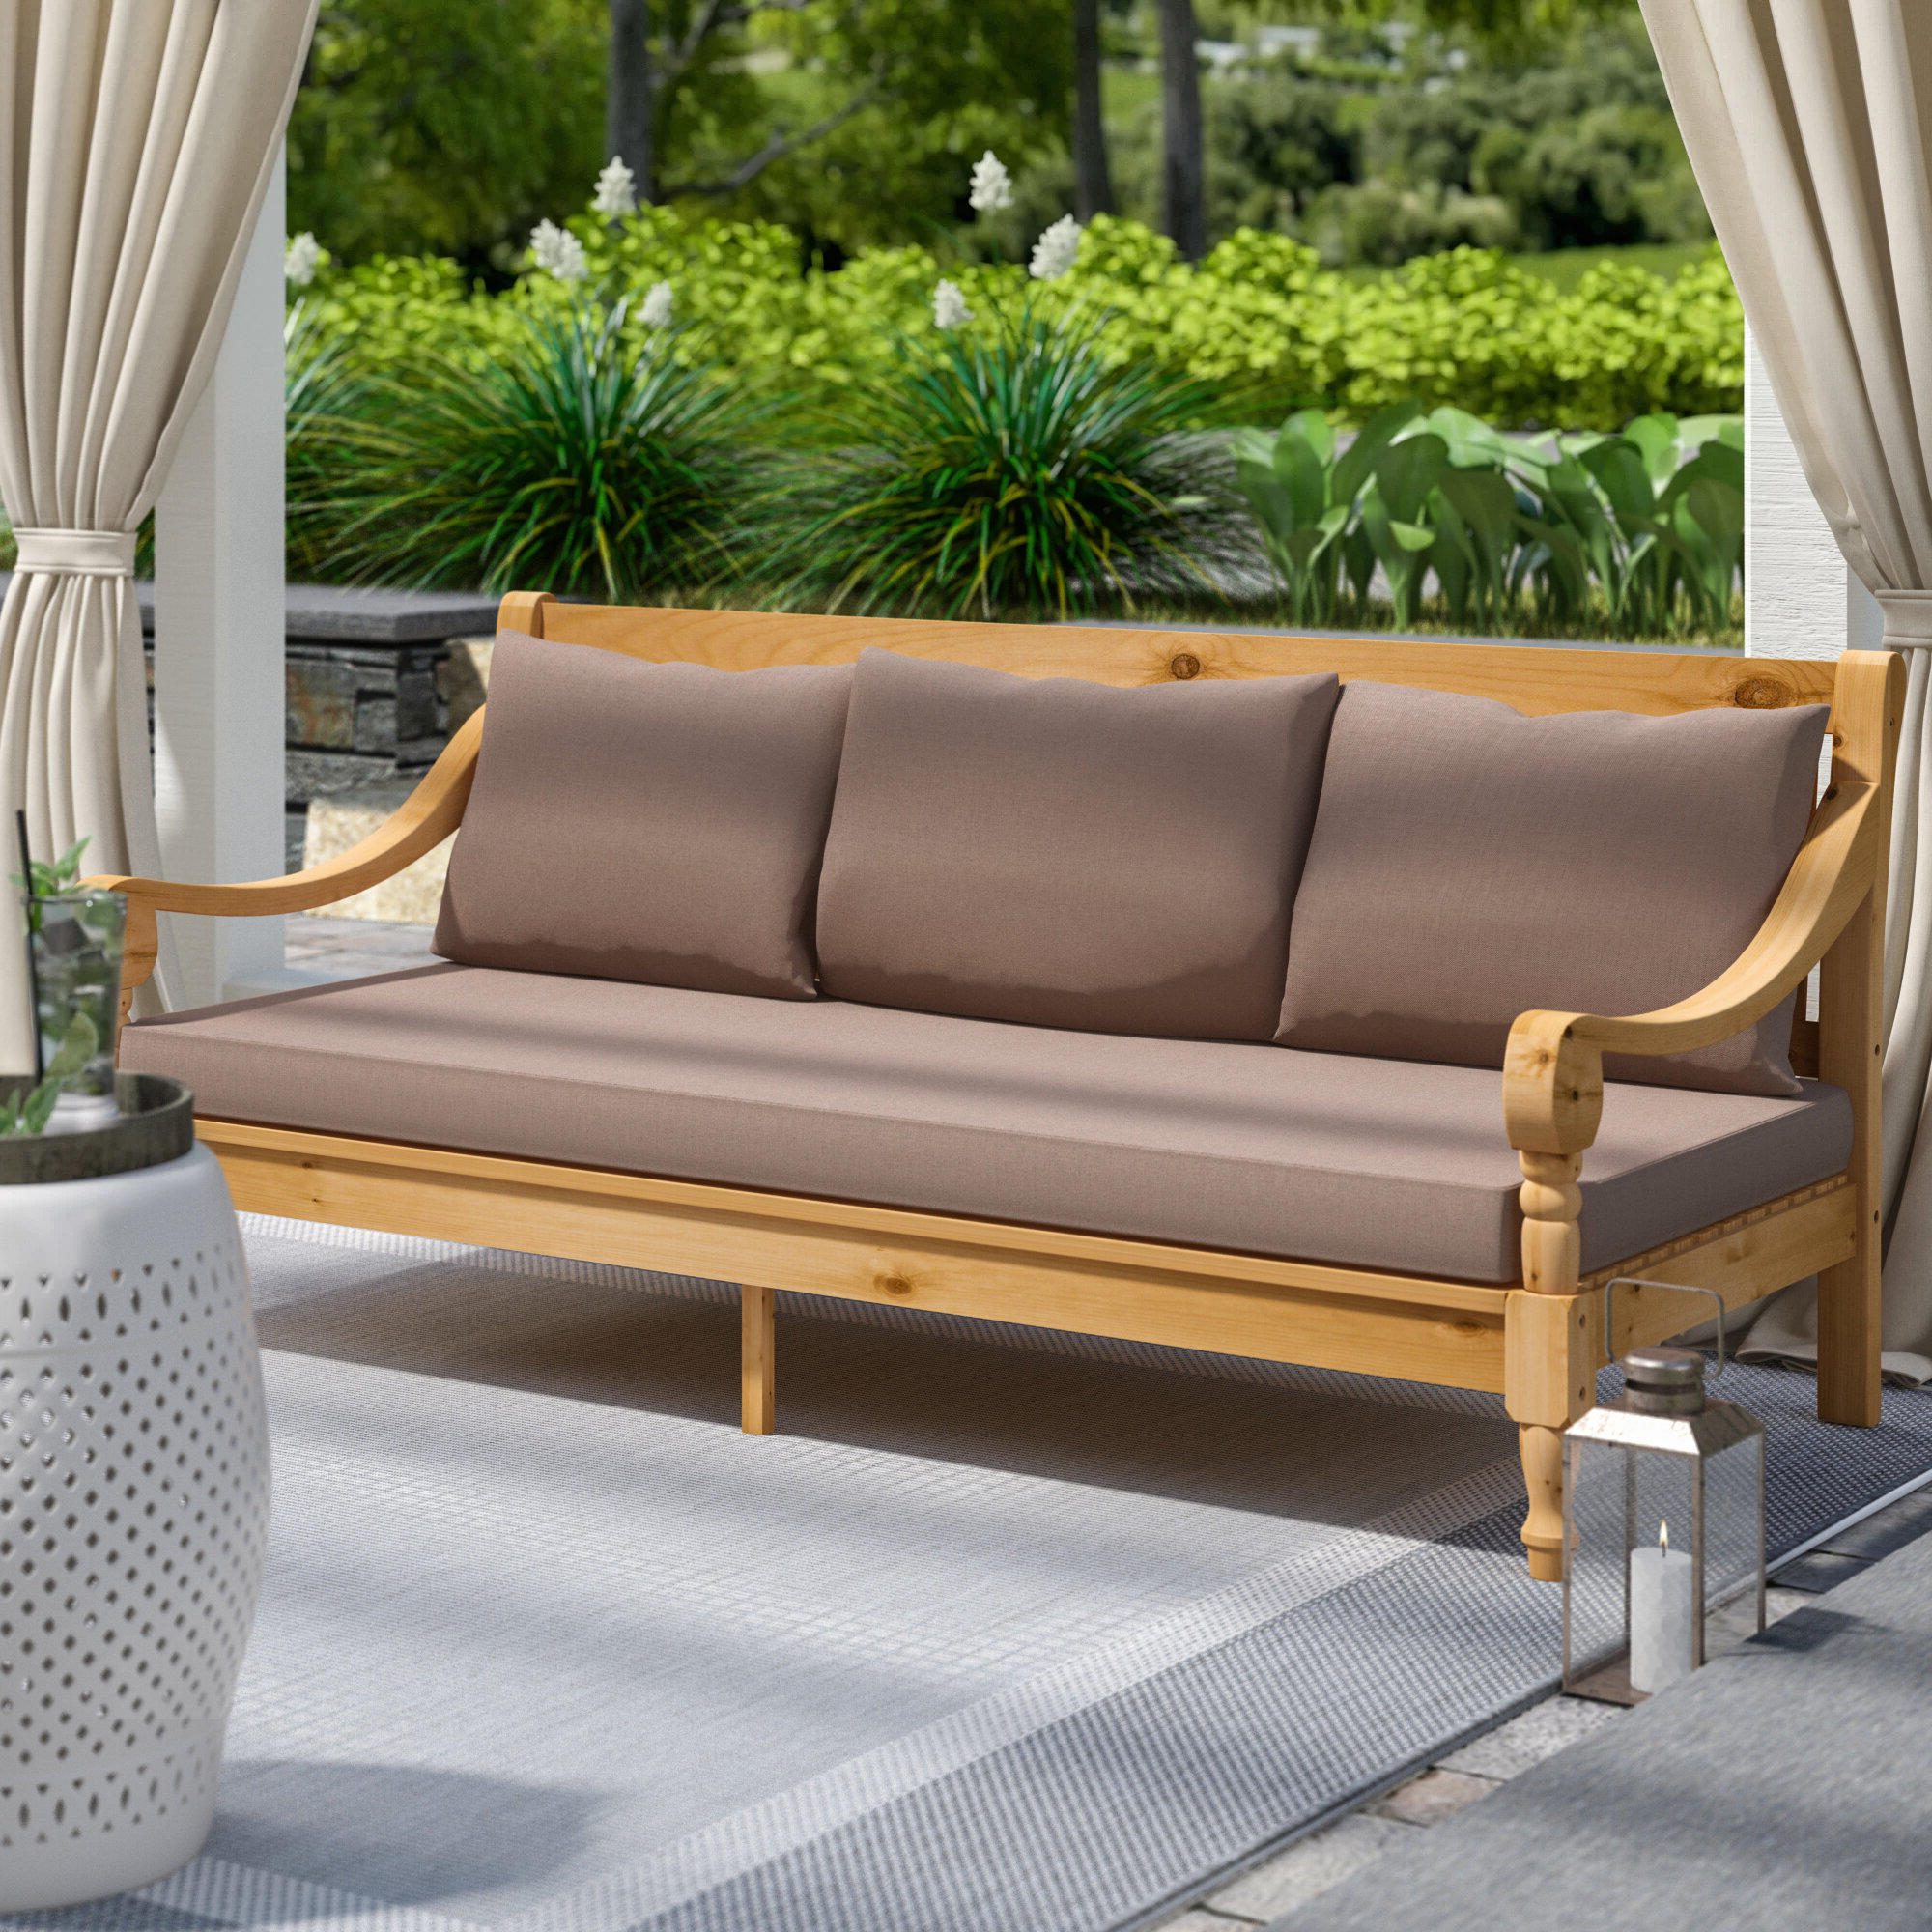 Roush Teak Patio Daybed With Cushions Within Most Up To Date Montford Teak Patio Sofas With Cushions (View 18 of 20)